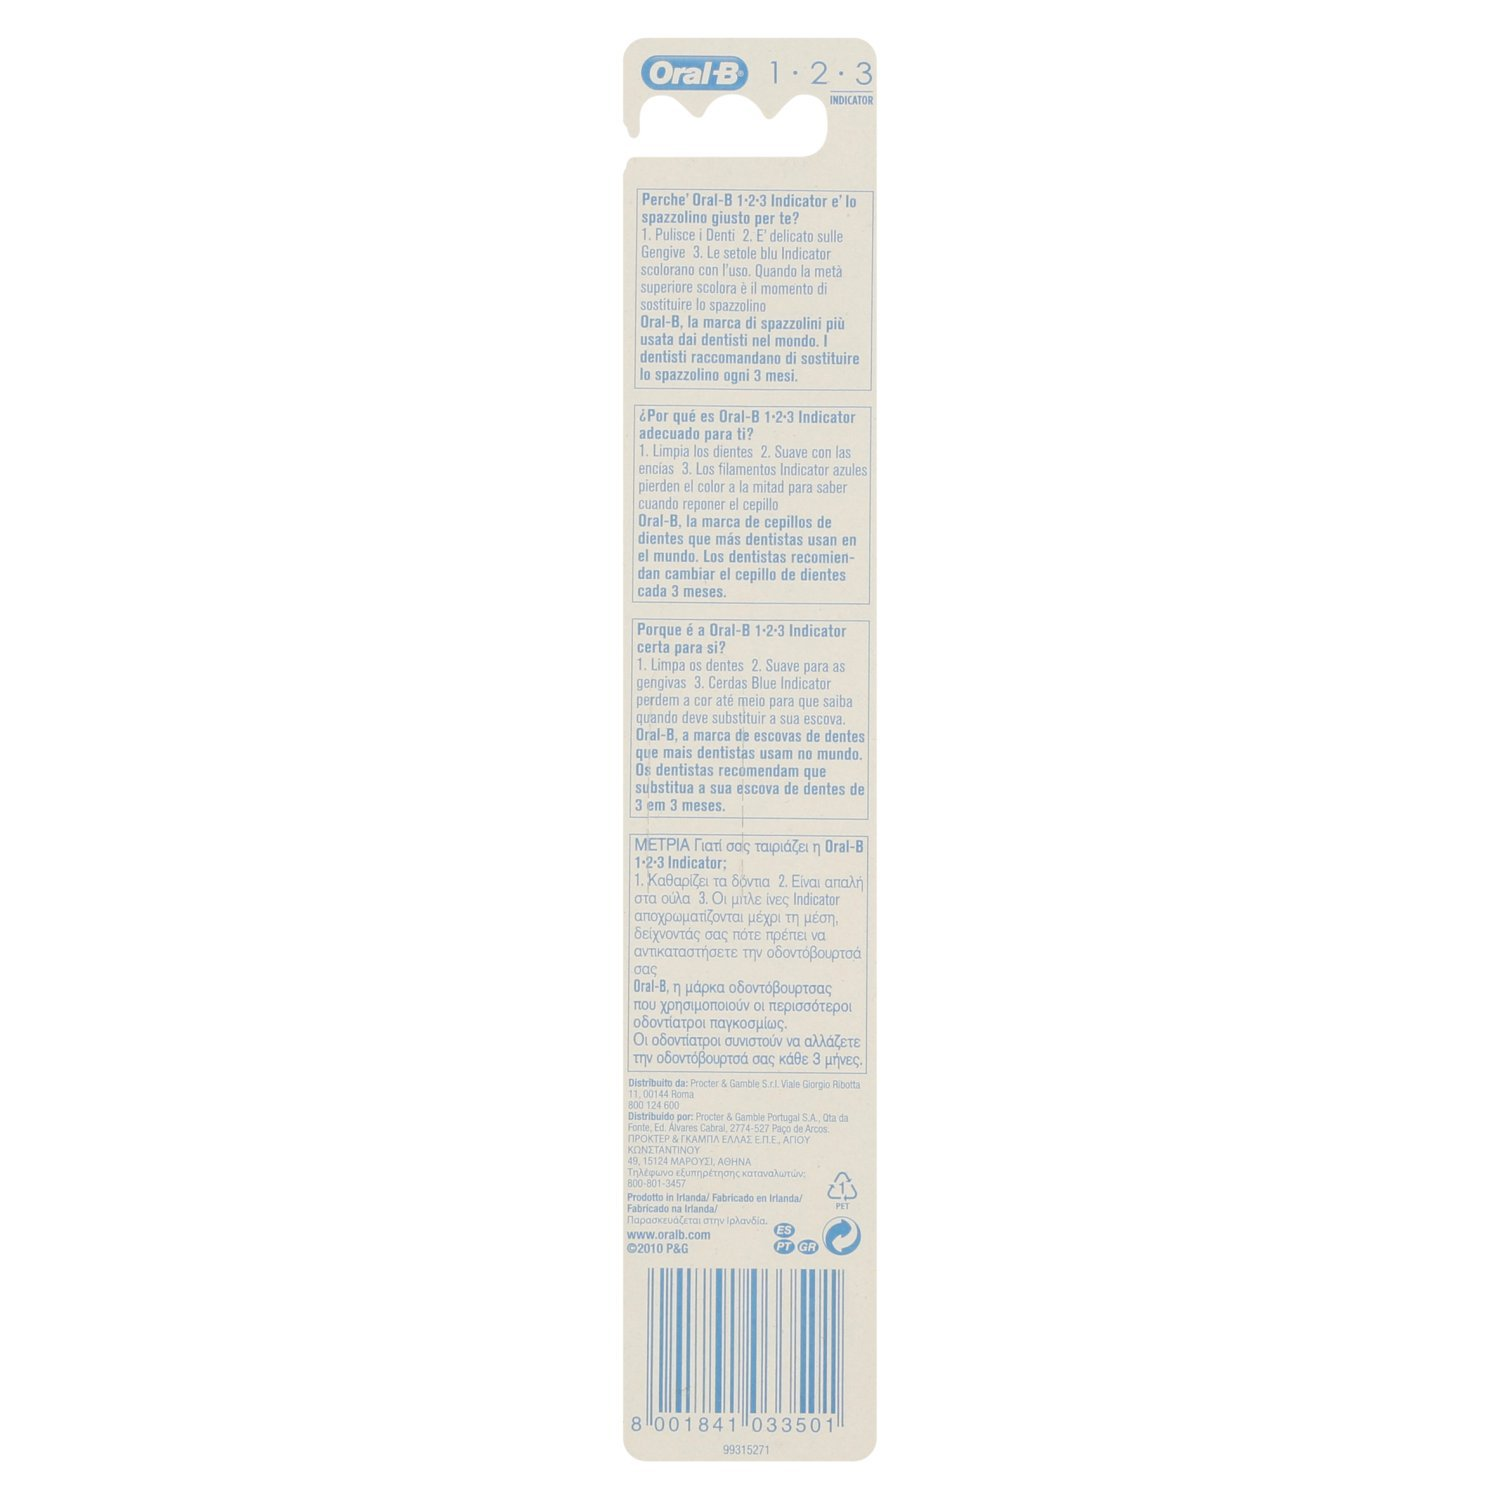 Amazon.com: Oral-B 1,2,3 Indicator 40 Toothbrush with Standard Head, Medium by Braun: Health & Personal Care